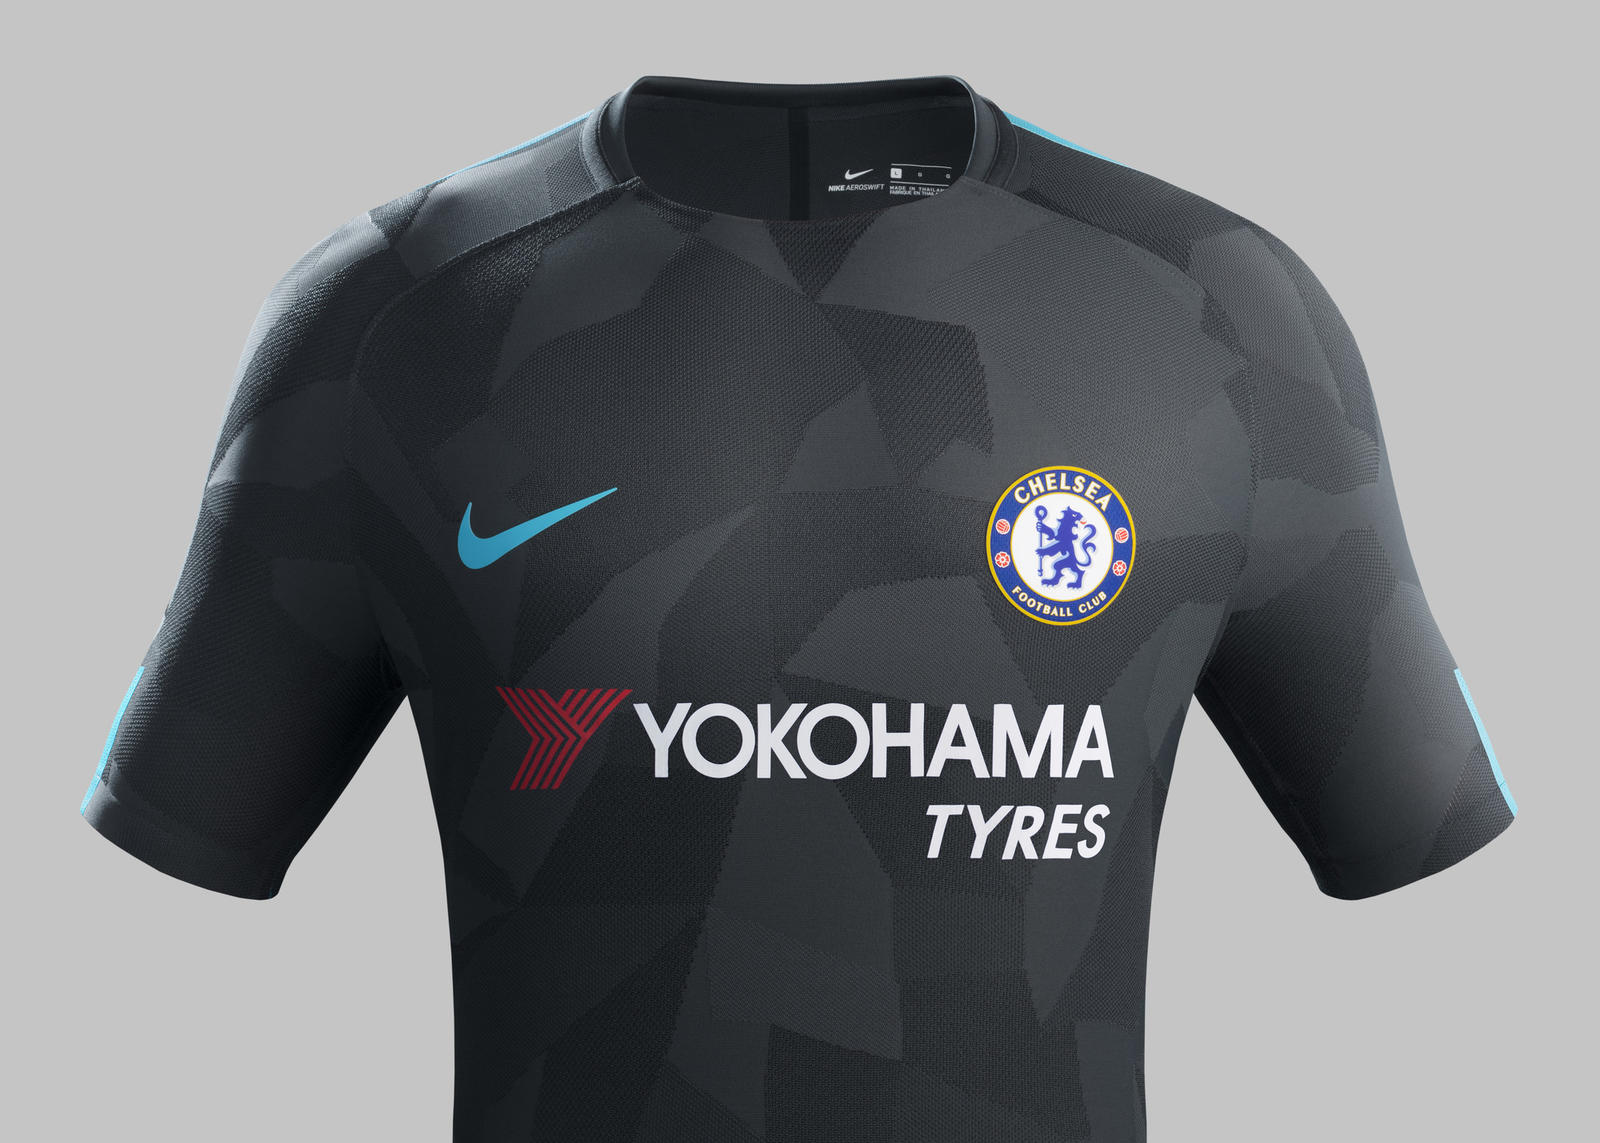 Fy17 18 club kits 3rd front chelsea r rectangle 1600